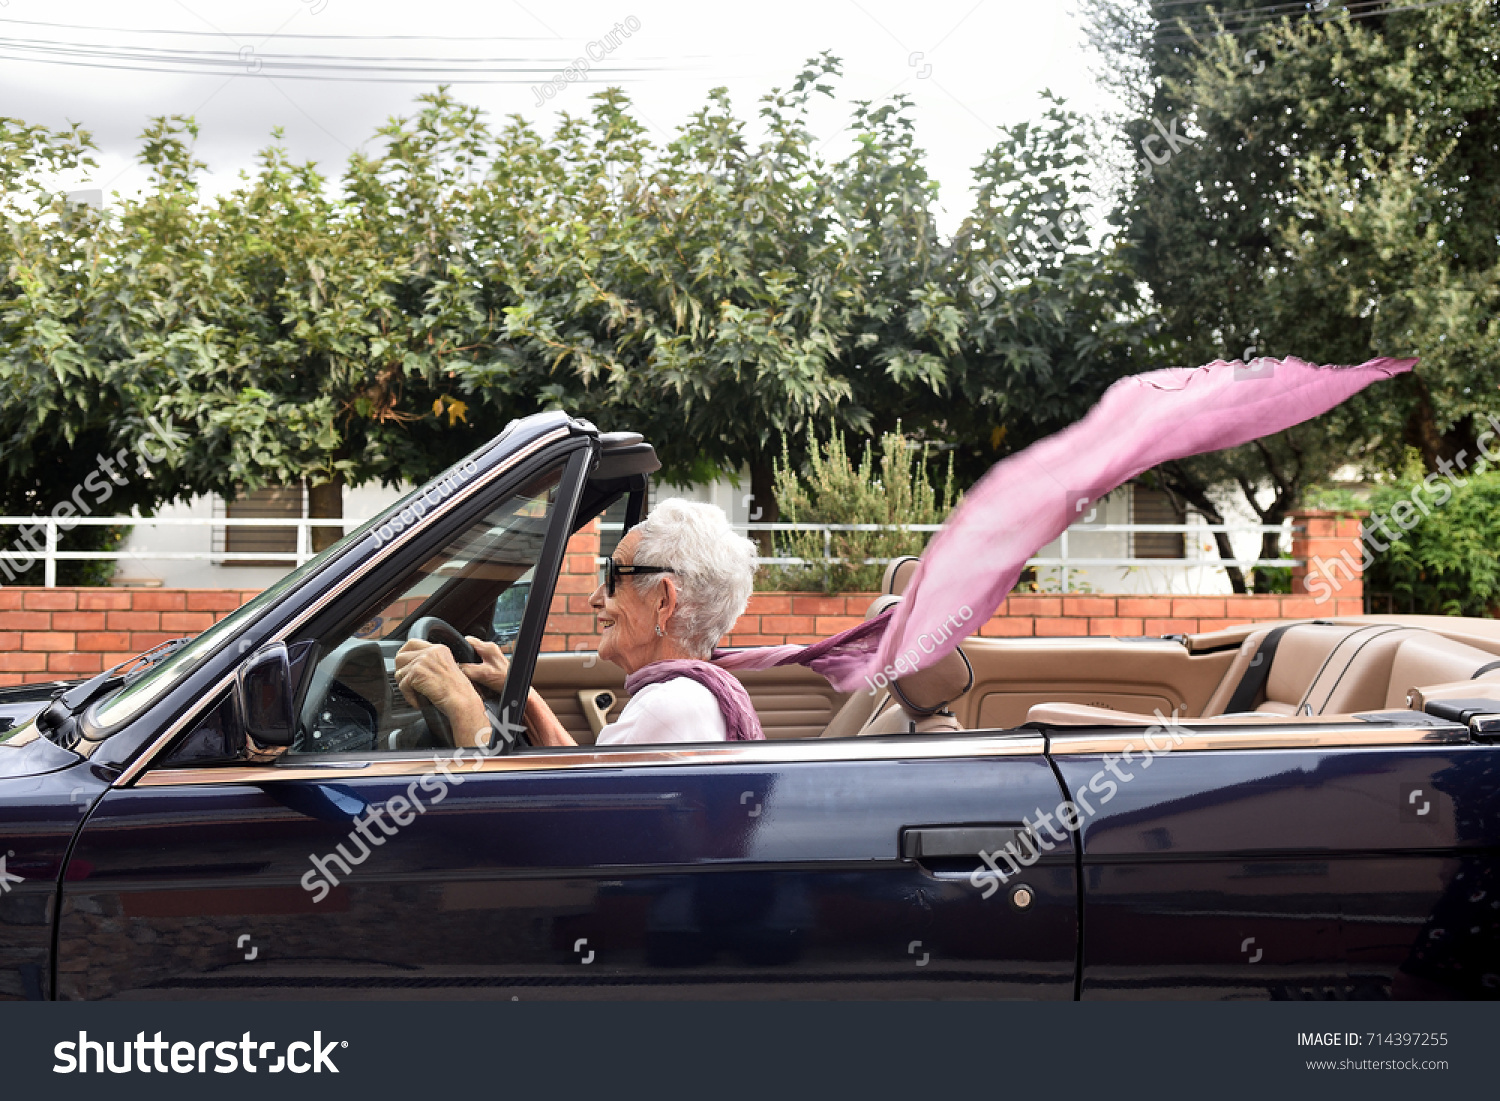 Old Woman Driving Convertible Car Stock Photo 714397255 - Shutterstock